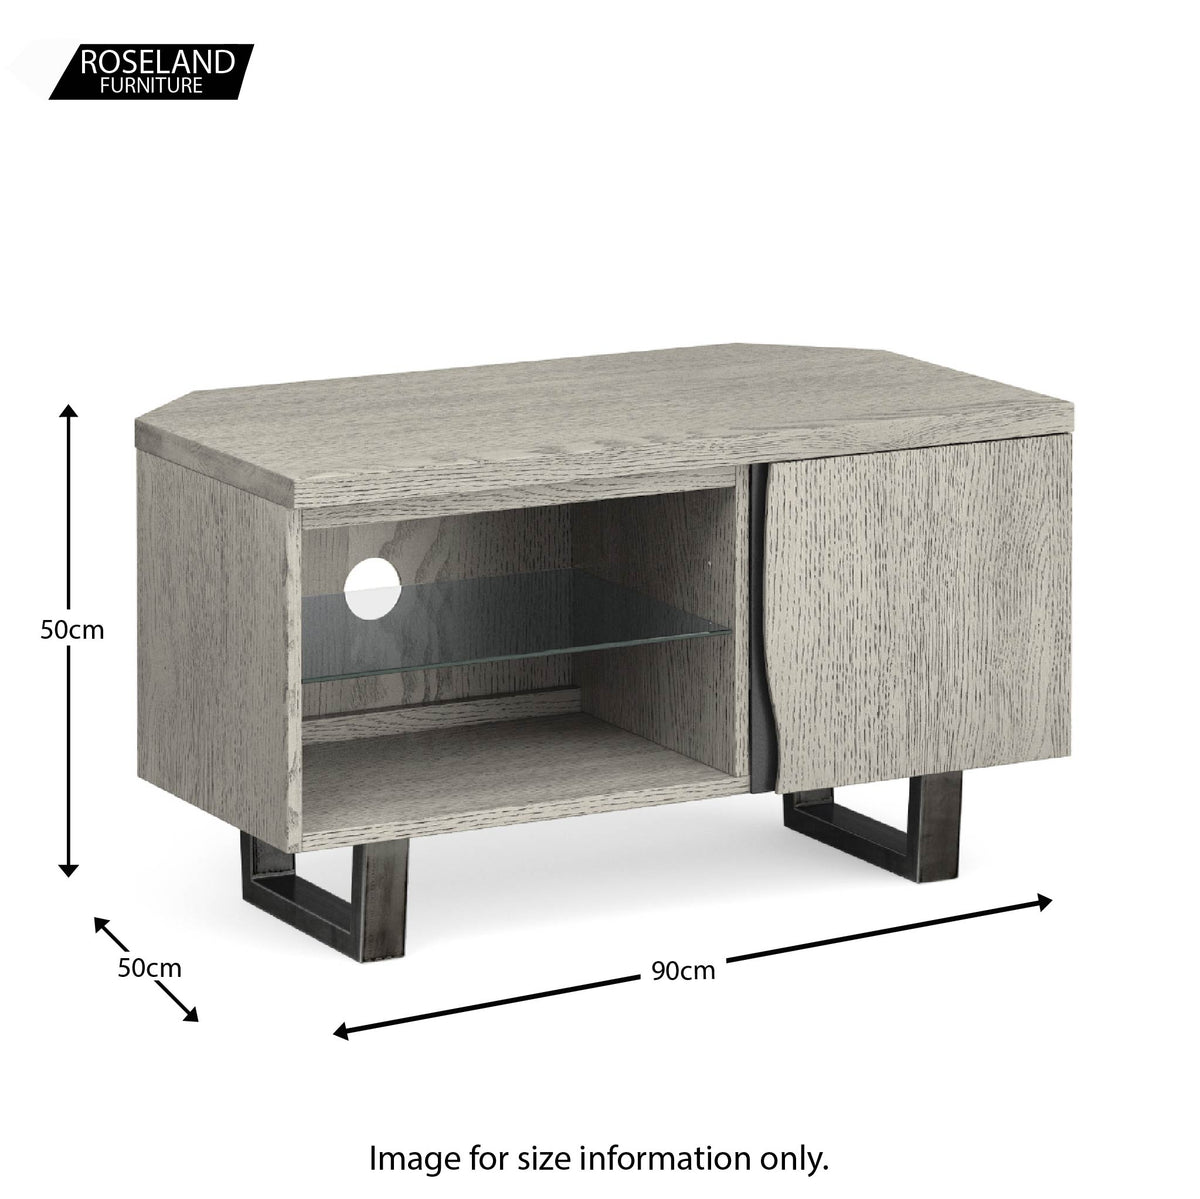 Soho Corner TV Stand with Glass Shelf - size guide